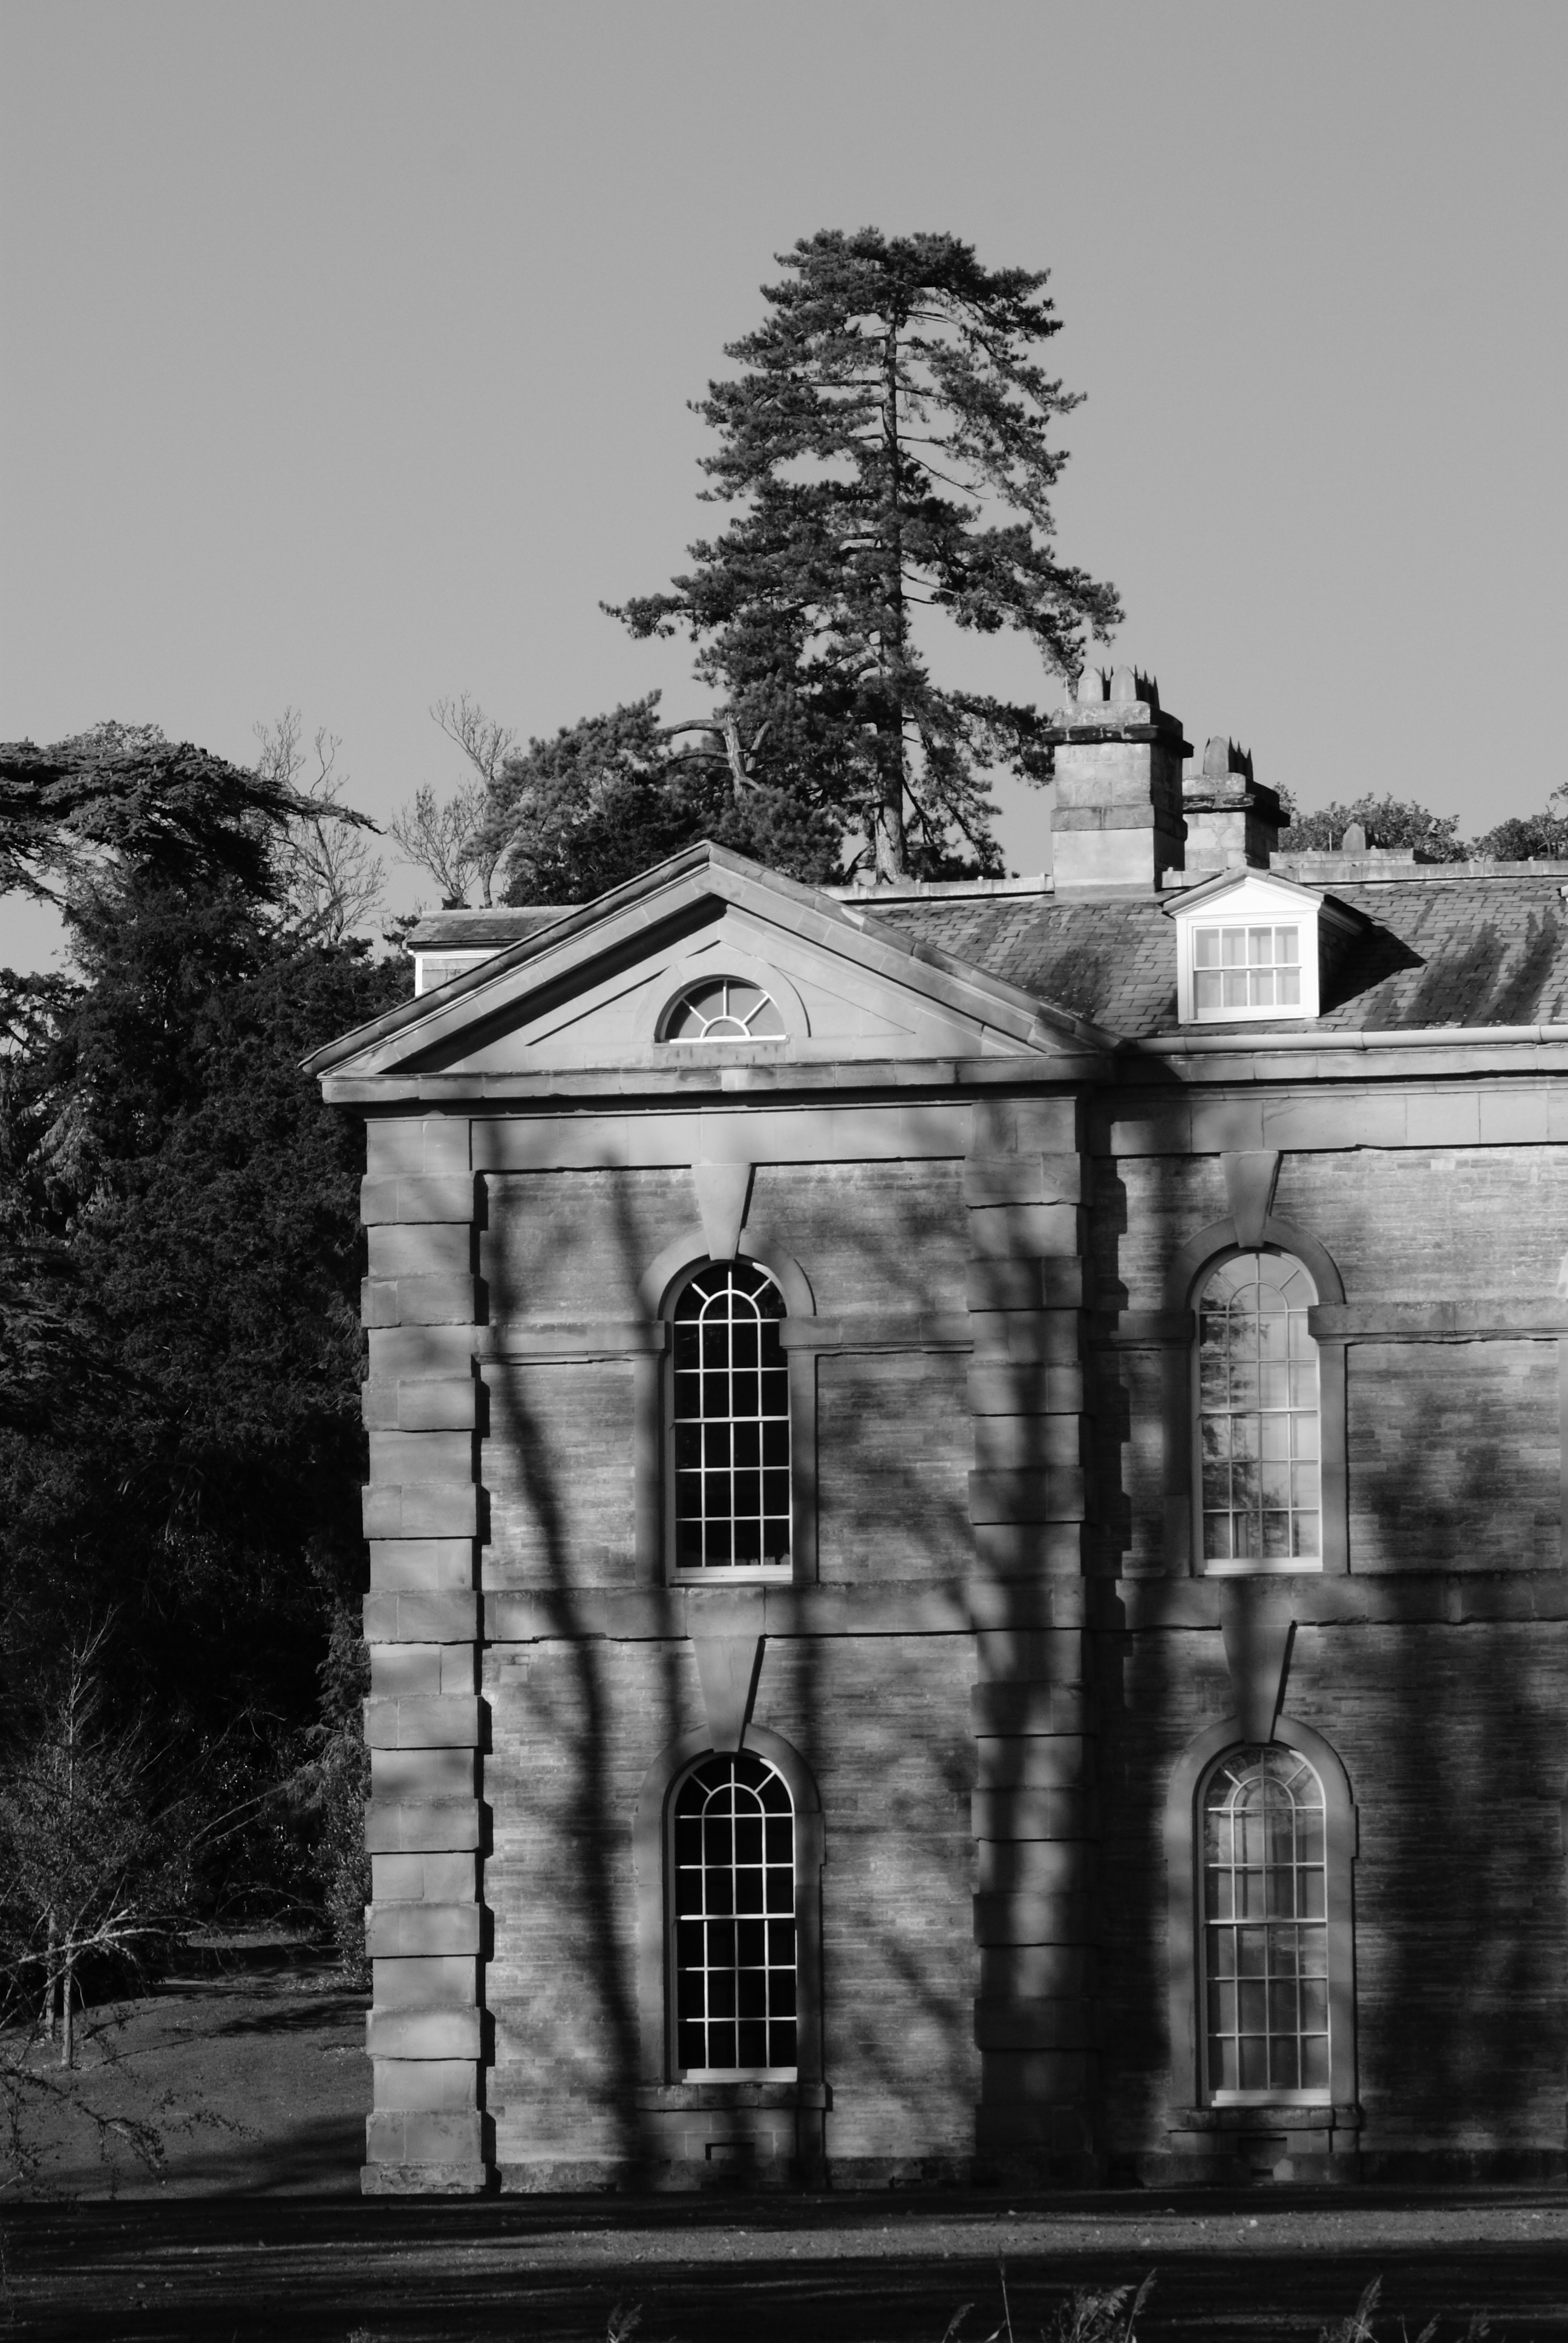 An 18thC mansion at Compton Verney